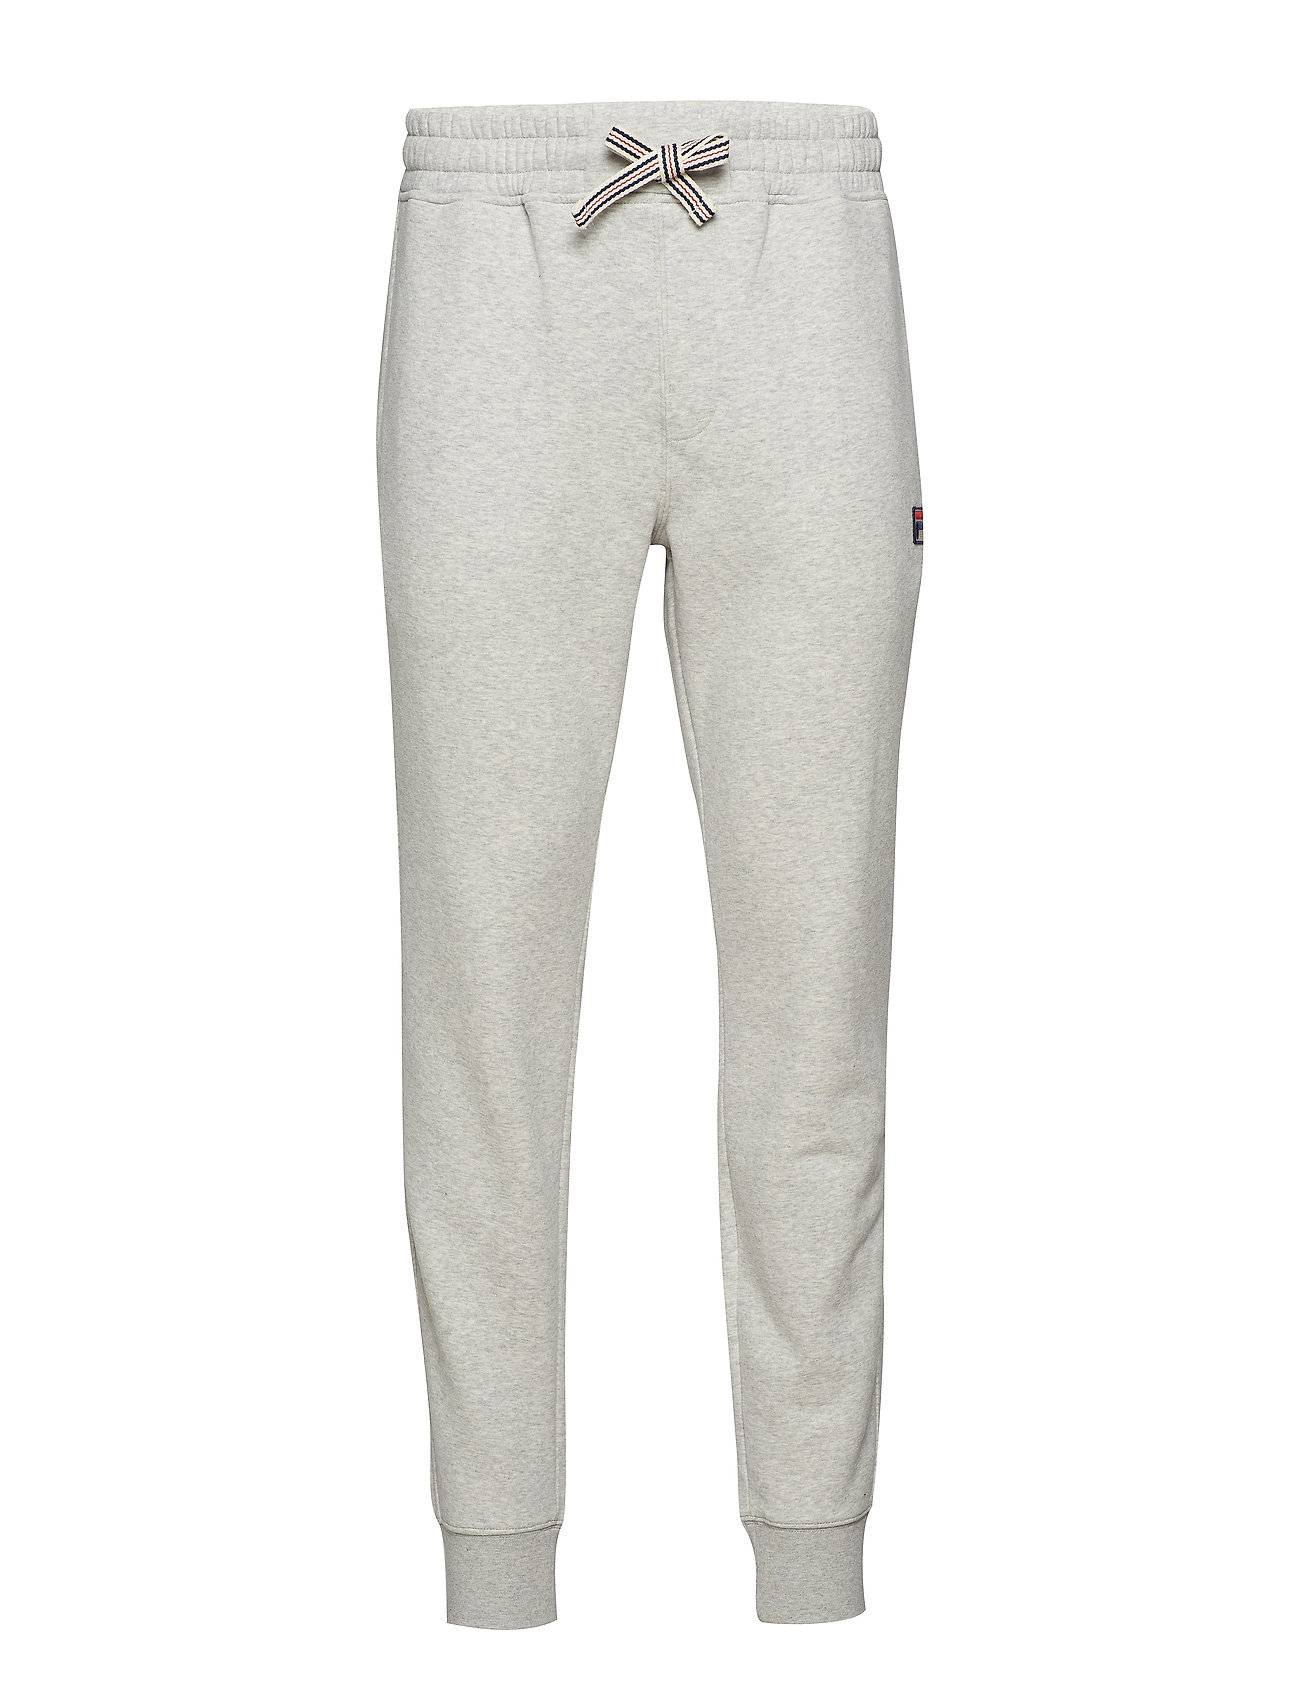 FILA Visconti Essential Sweatpants With Tipping